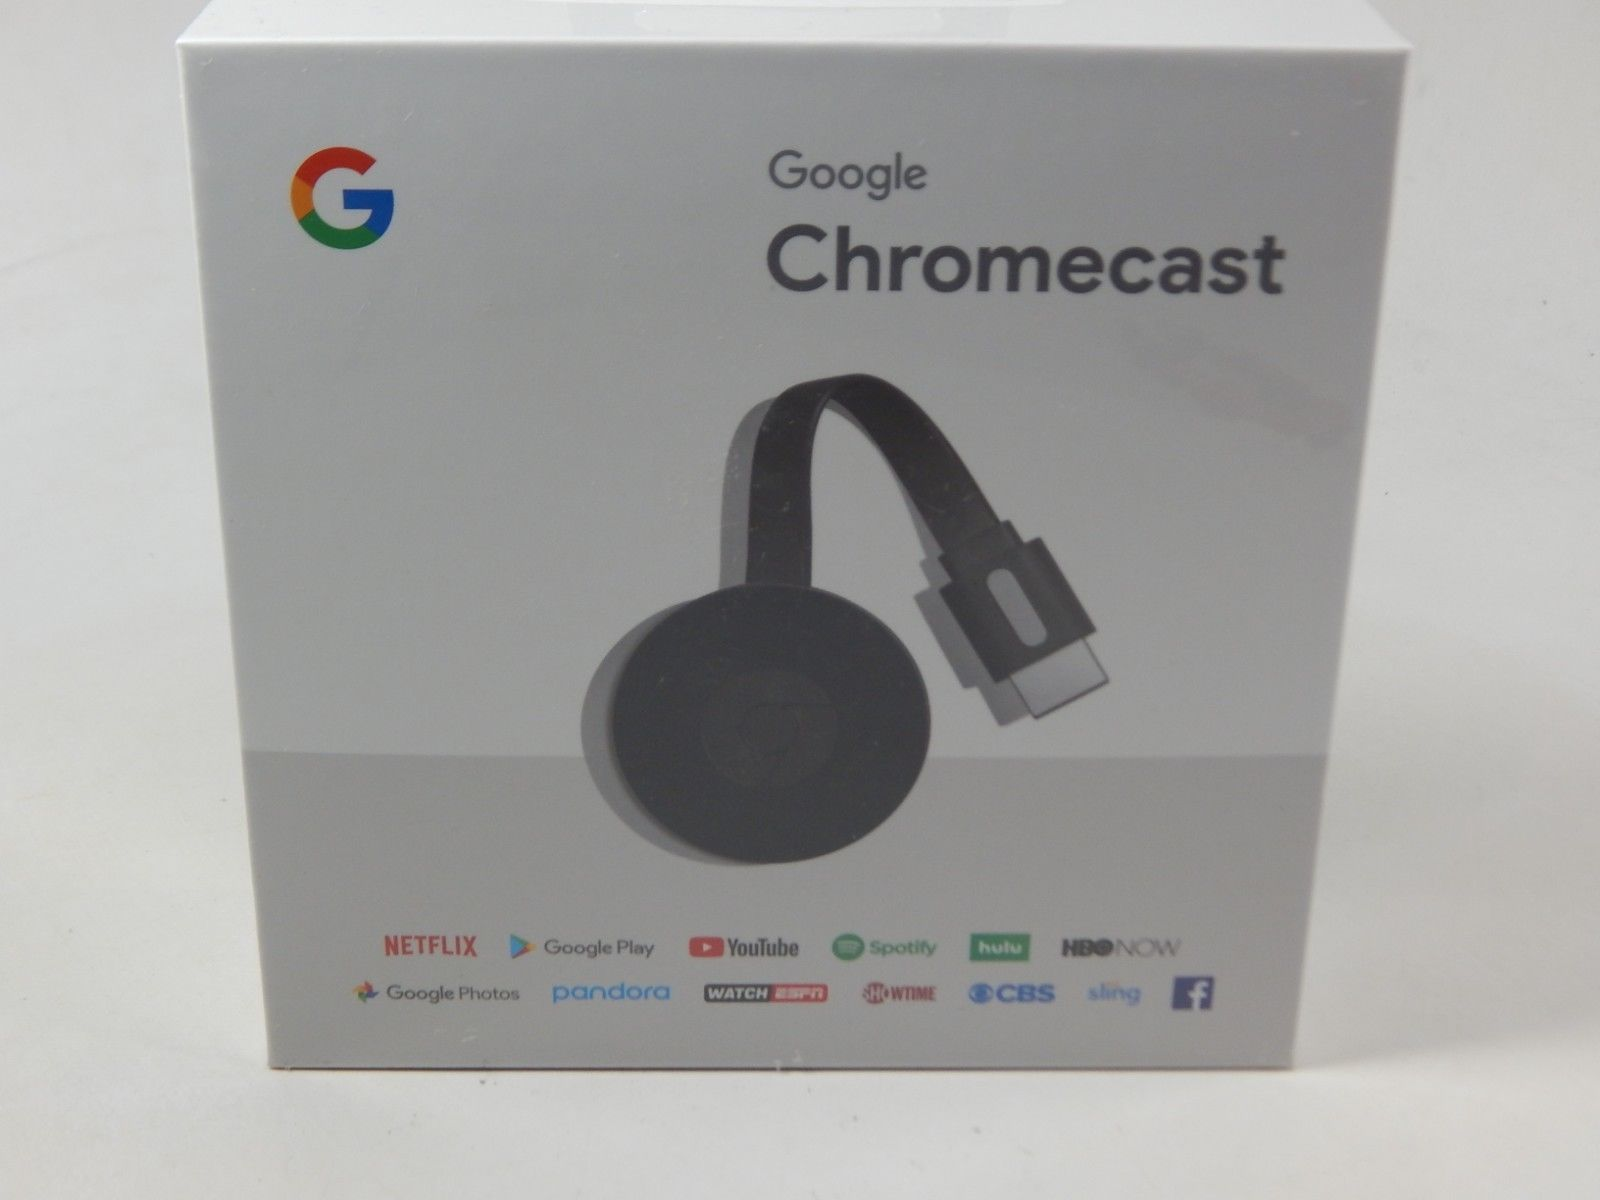 Google Chromecast 2nd Generation HD Media Streamer - Black